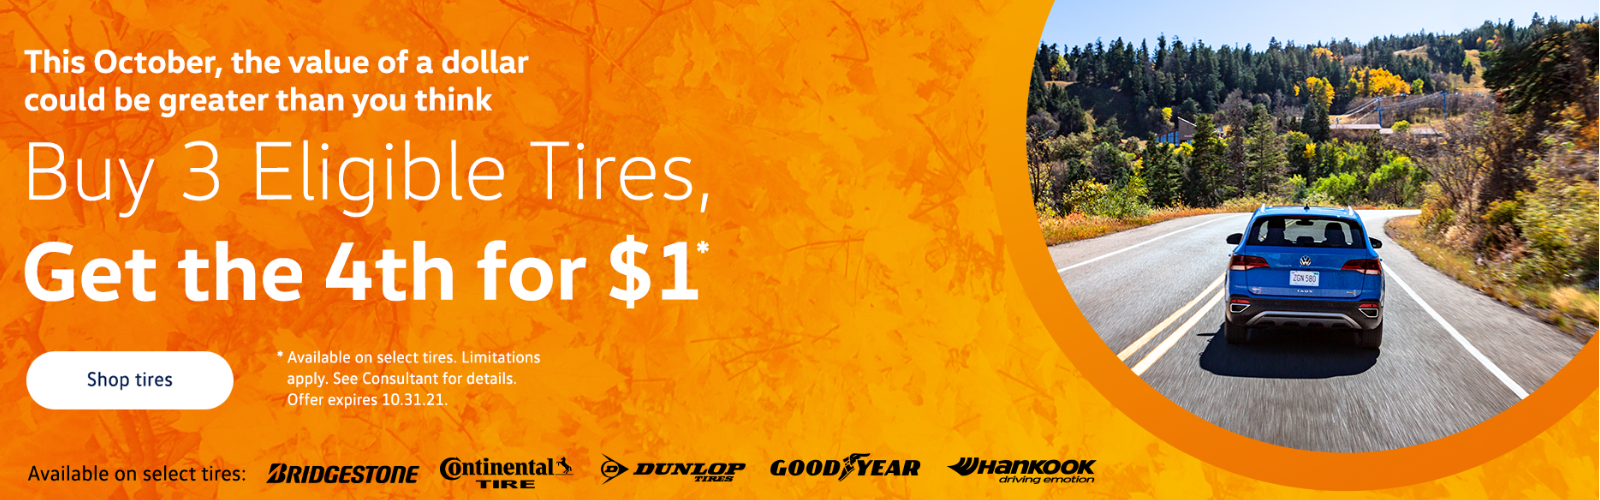 VW fall tire special